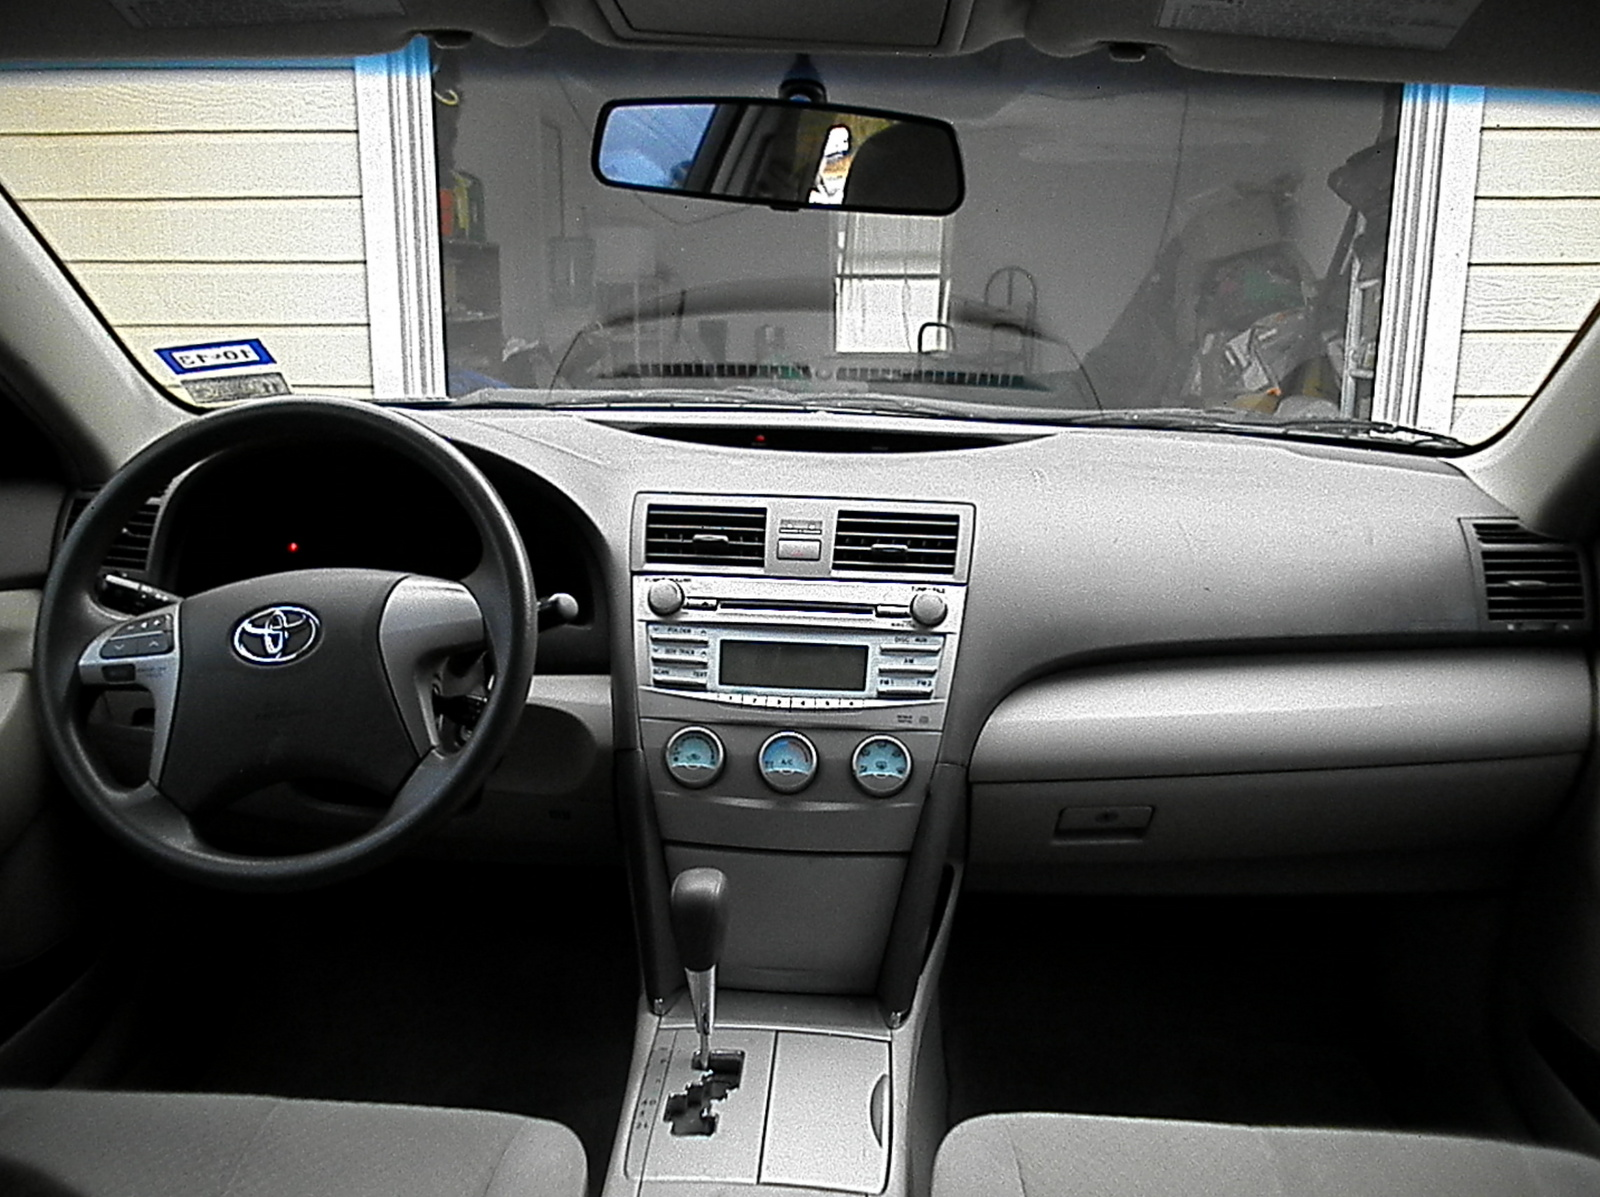 toyota camry 2008 interior pictures car and driver car and driver 2008 toyota camry interior. Black Bedroom Furniture Sets. Home Design Ideas